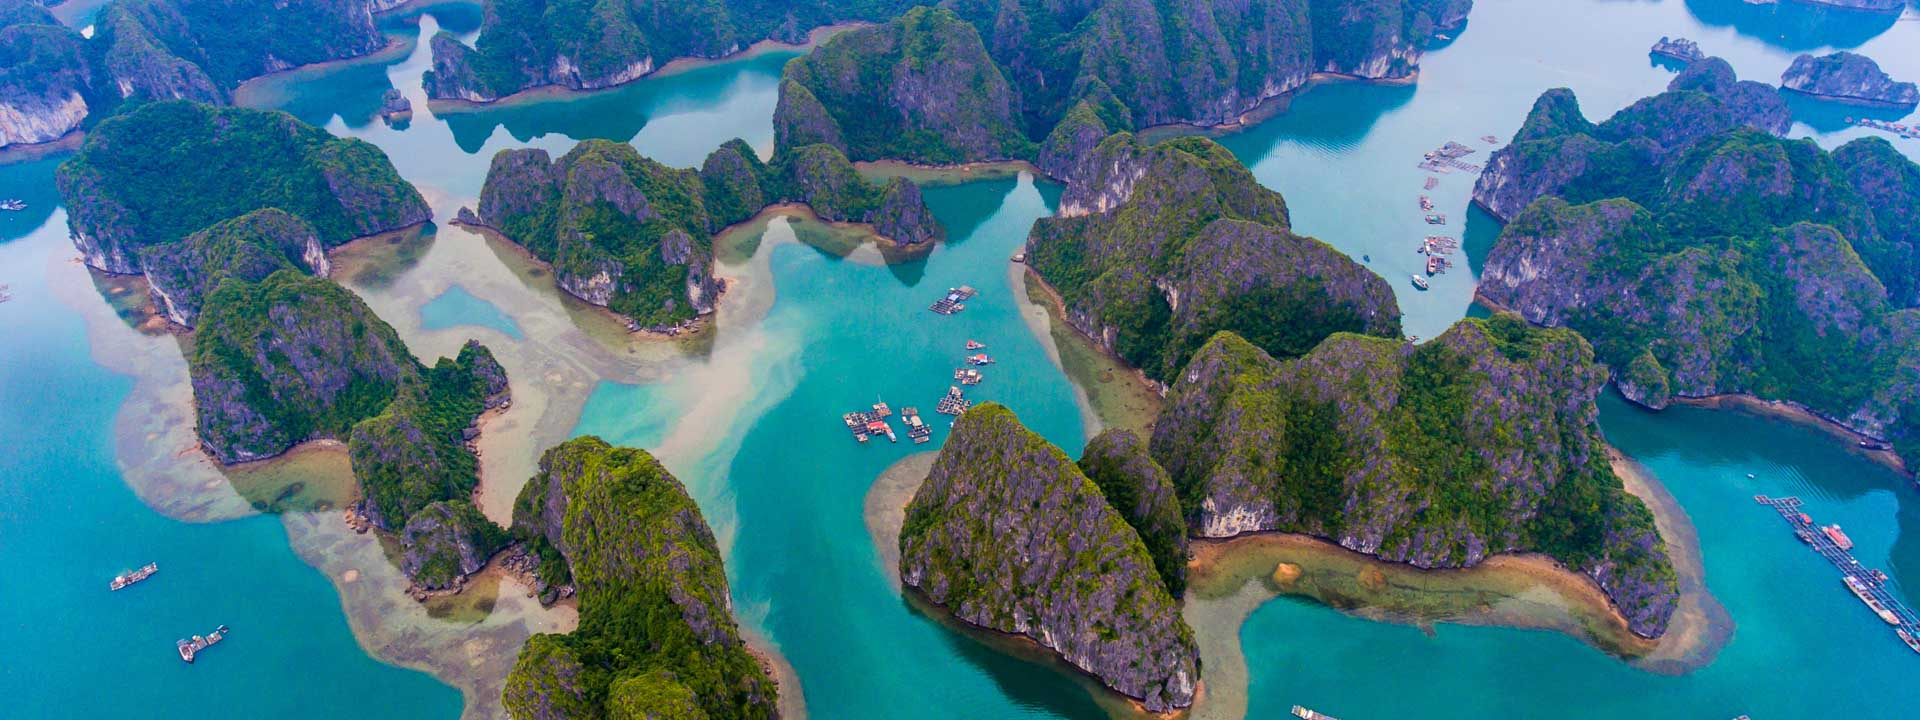 Discover the Charms of Northern Vietnam in Style 5 days